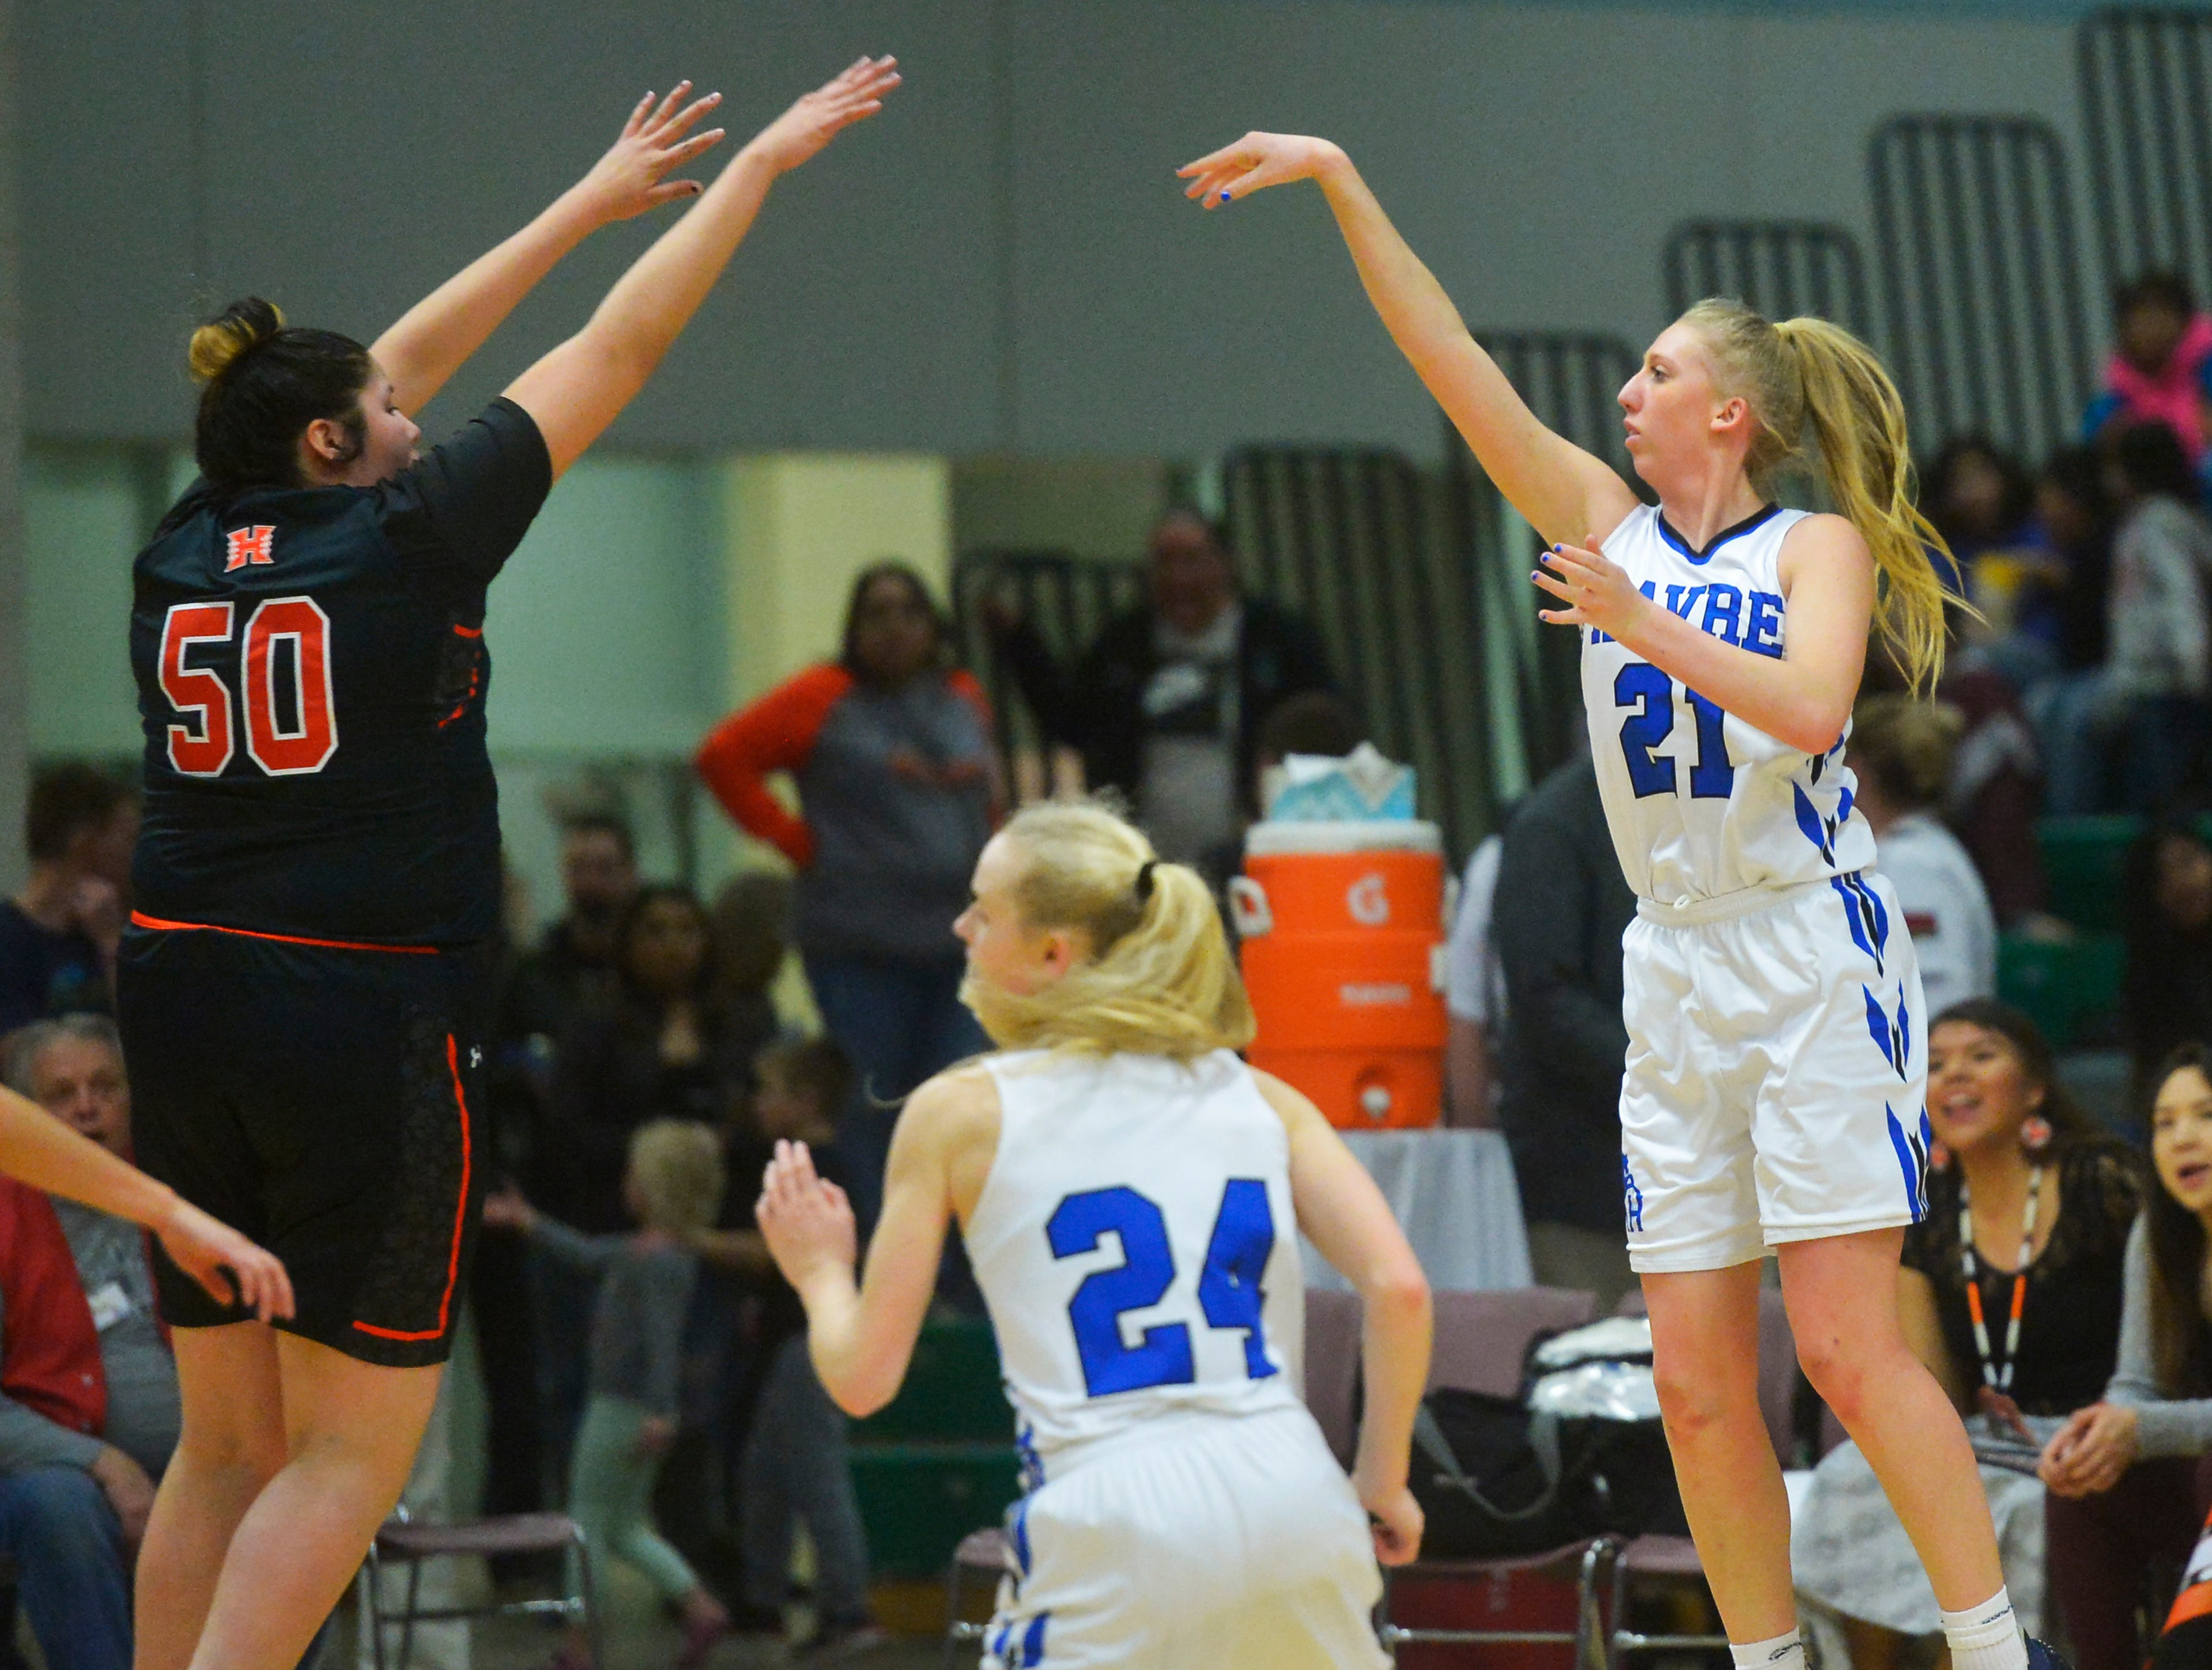 Havre's Kadia Miller attempts a shot over Hardin's Julianna Takes Horse during the girls title game of the State Class A Basketball Tournament in the Four Seasons Arena, Saturday.